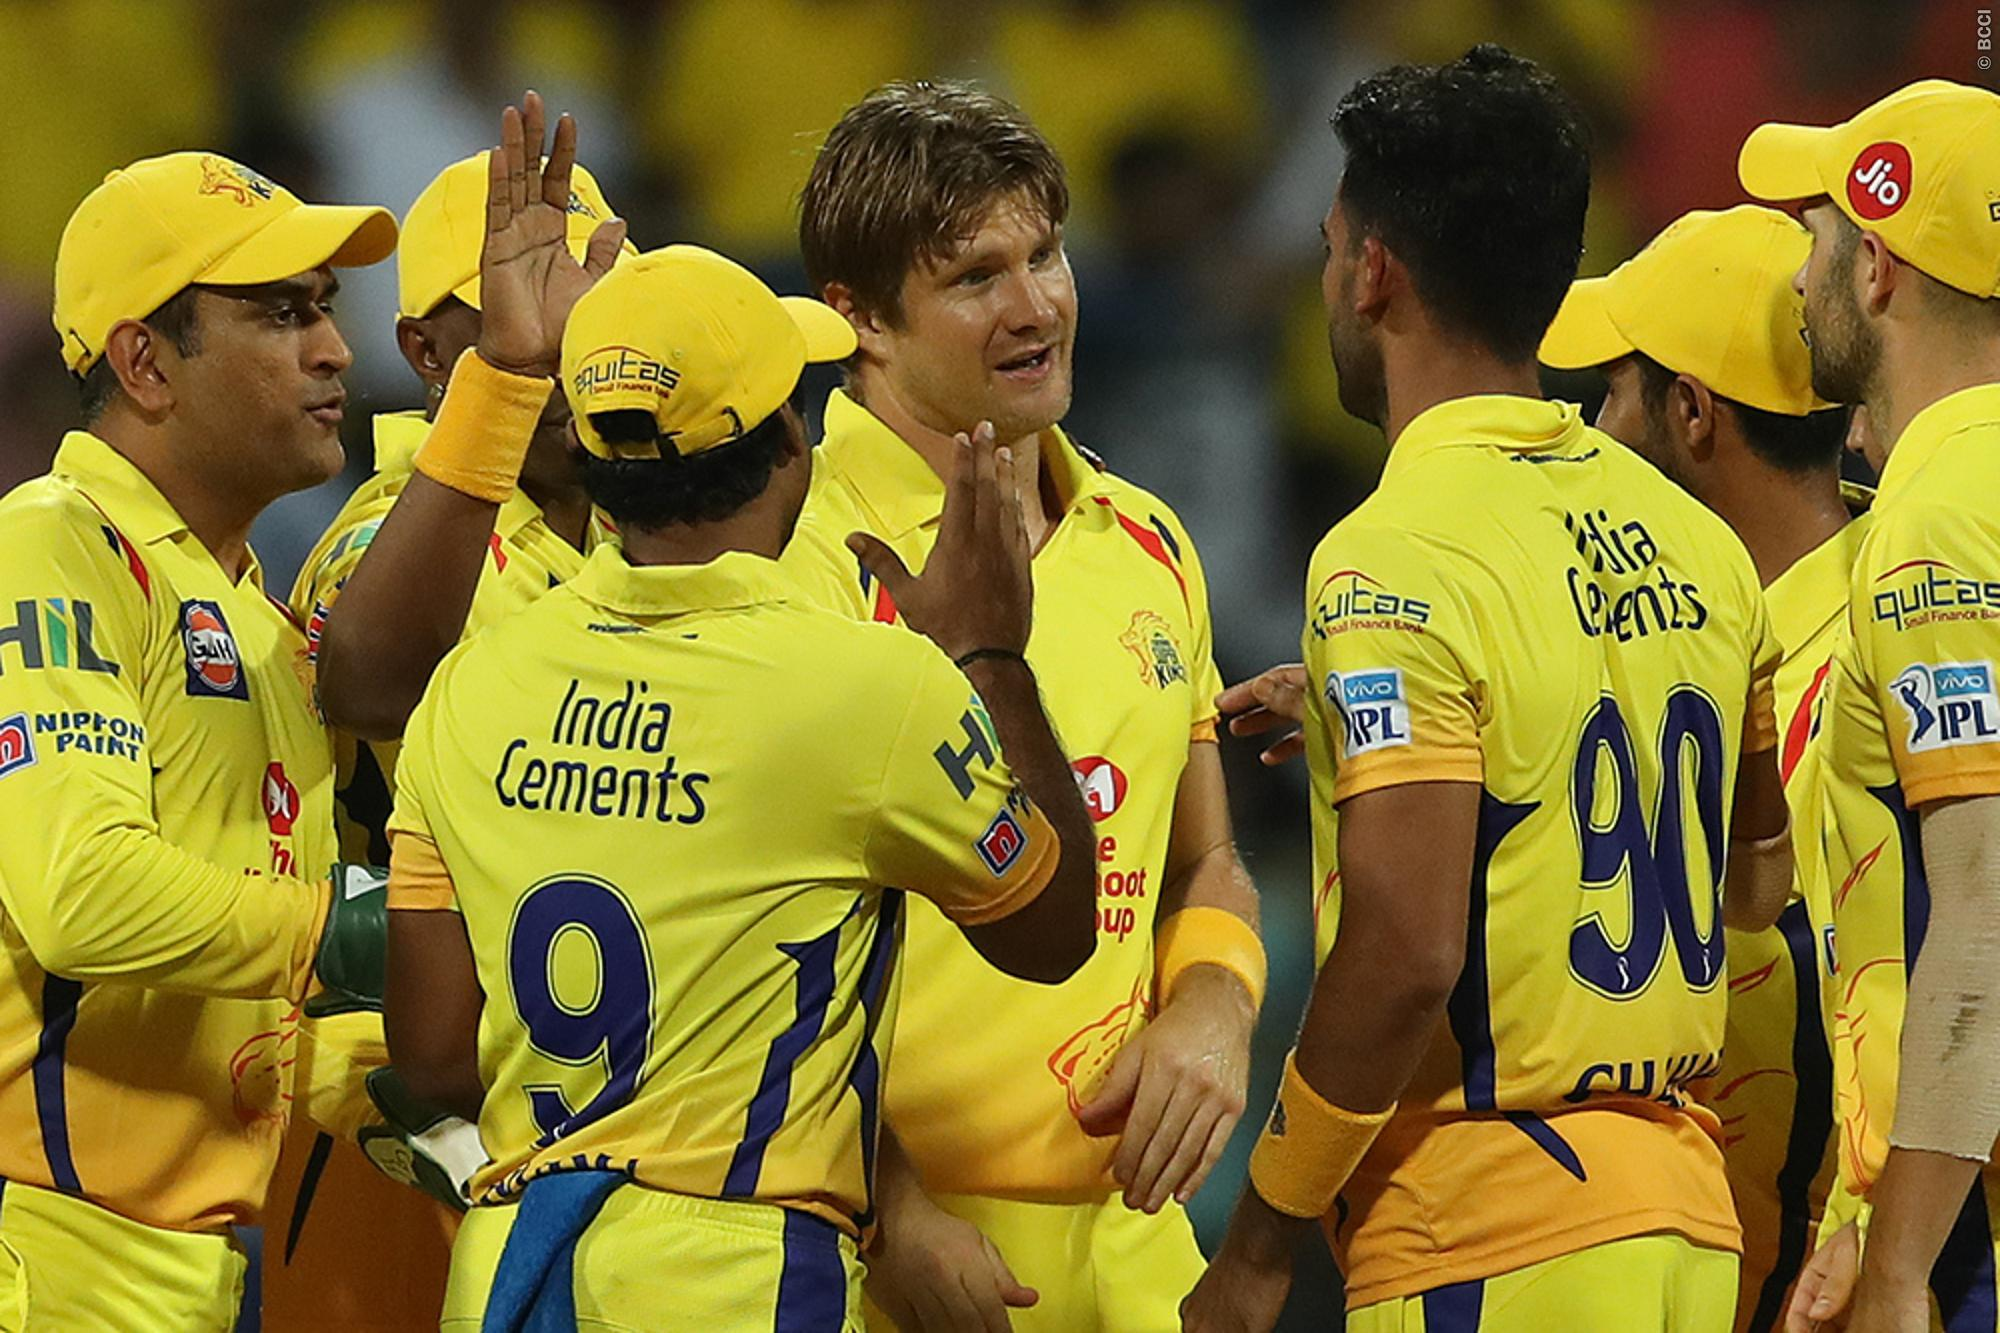 Anti-IPL protesters burn CSK jersey, nearly hit Ravindra Jadeja with slippers